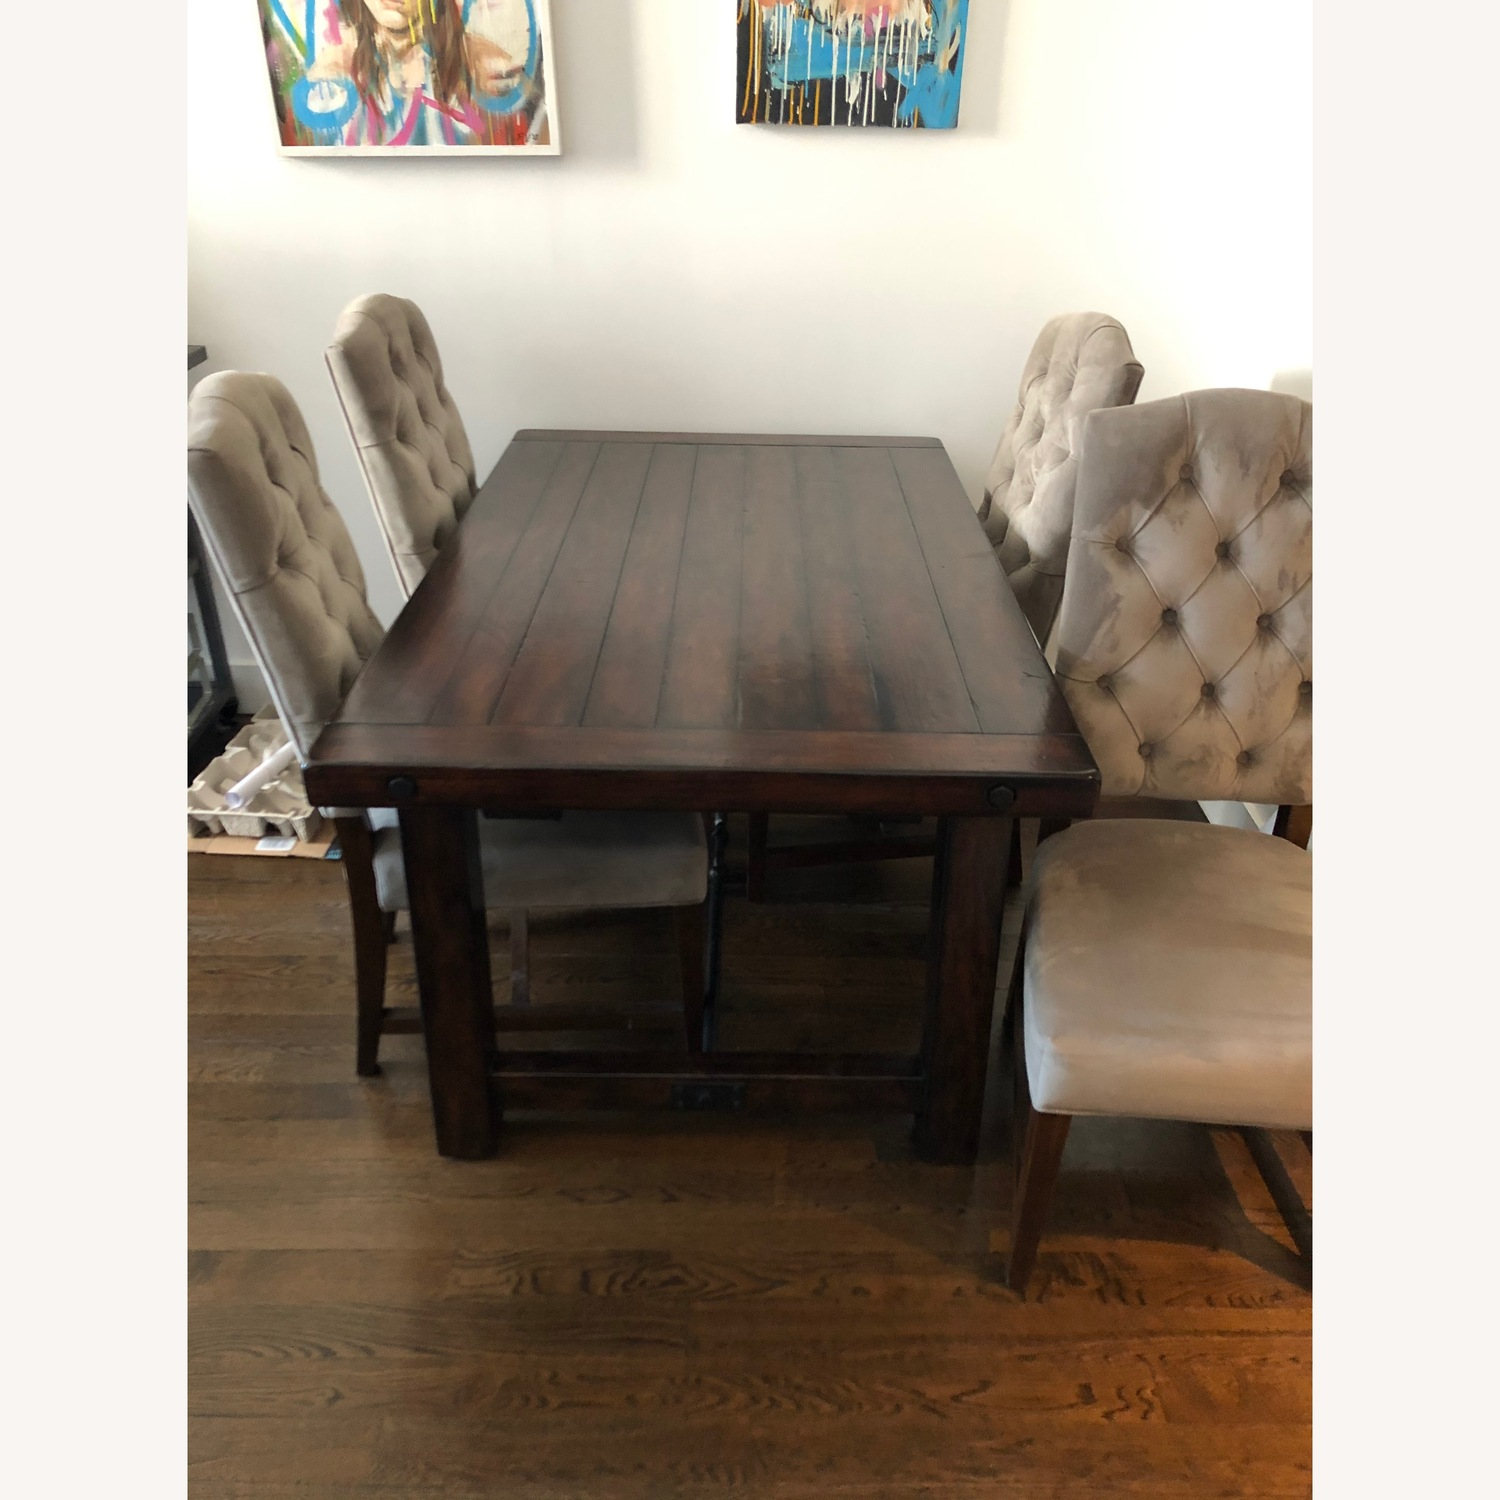 Crate & Barrel Dark Wood Table with Leaf - image-1